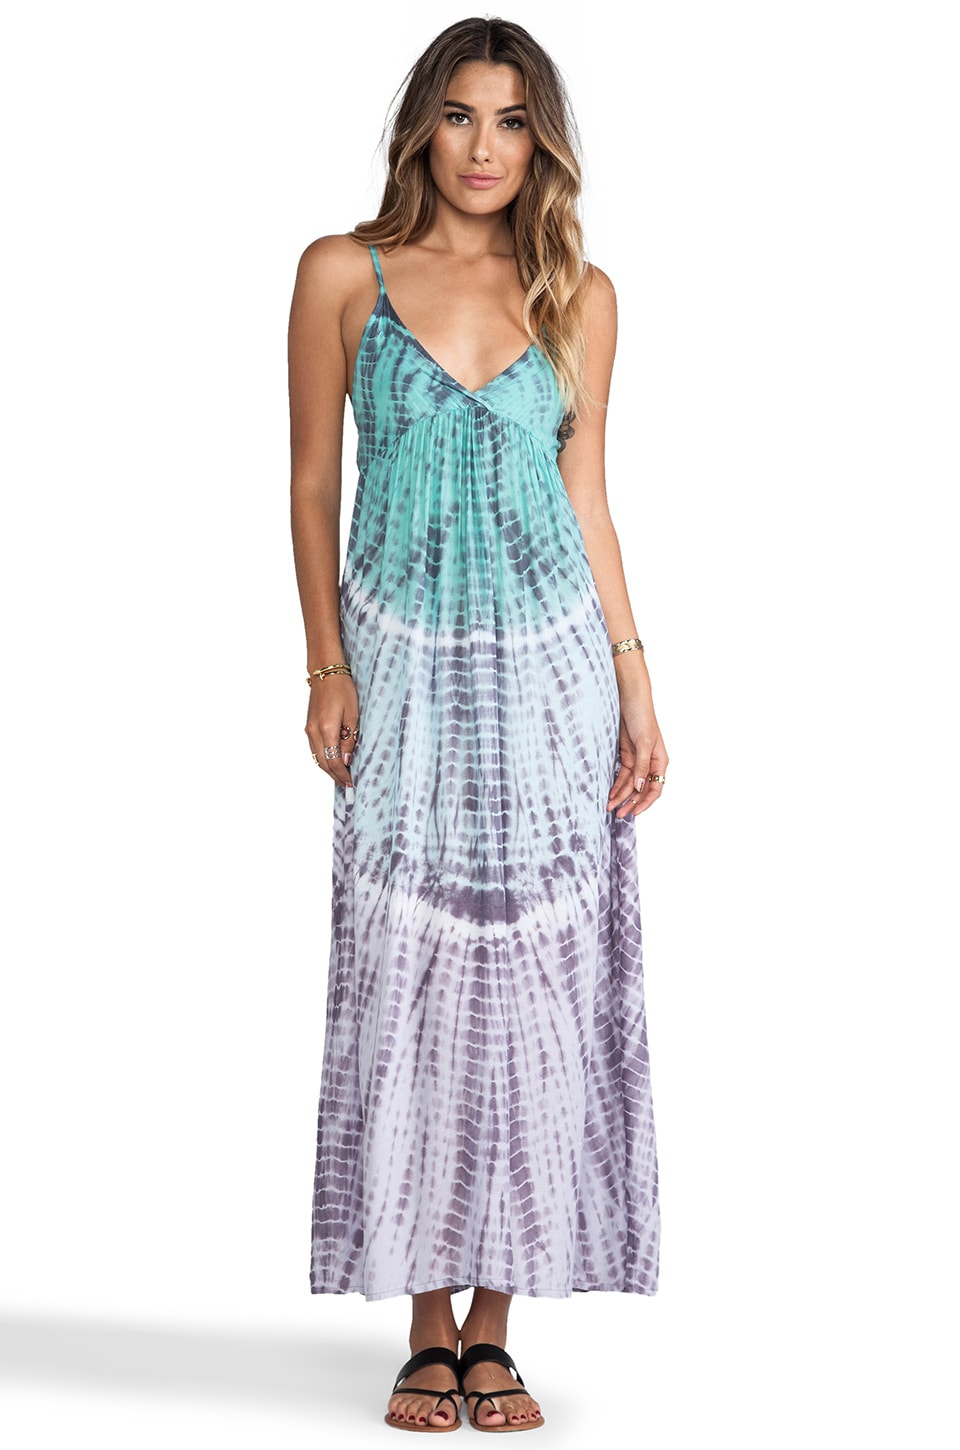 Tiare Hawaii Gracie Maxi in Teal/Plum Abstract